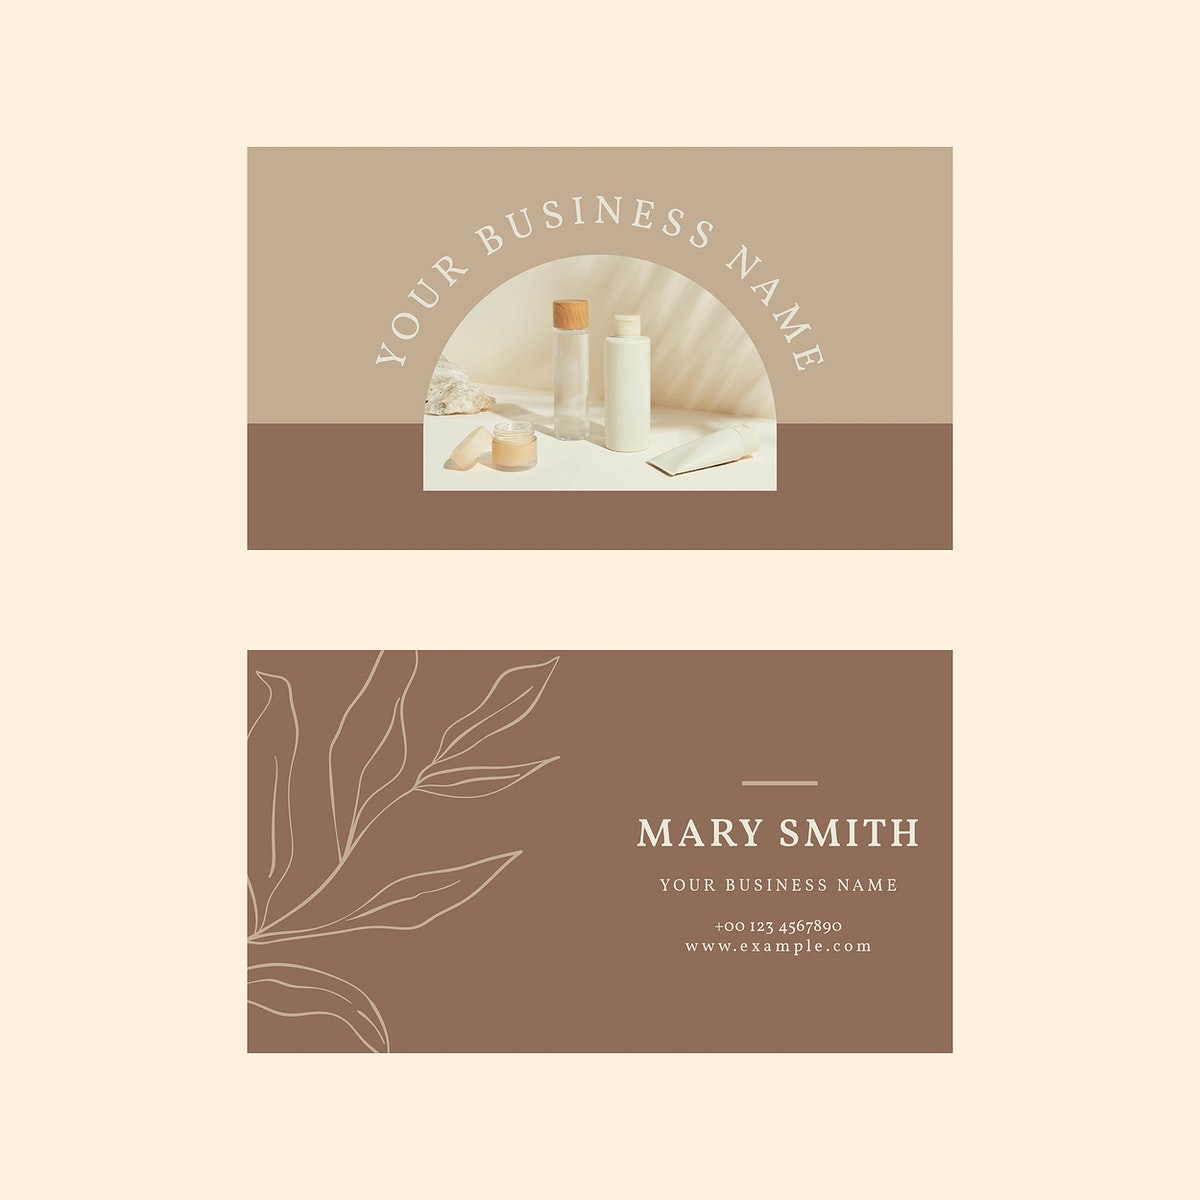 Cosmetic business card template psd